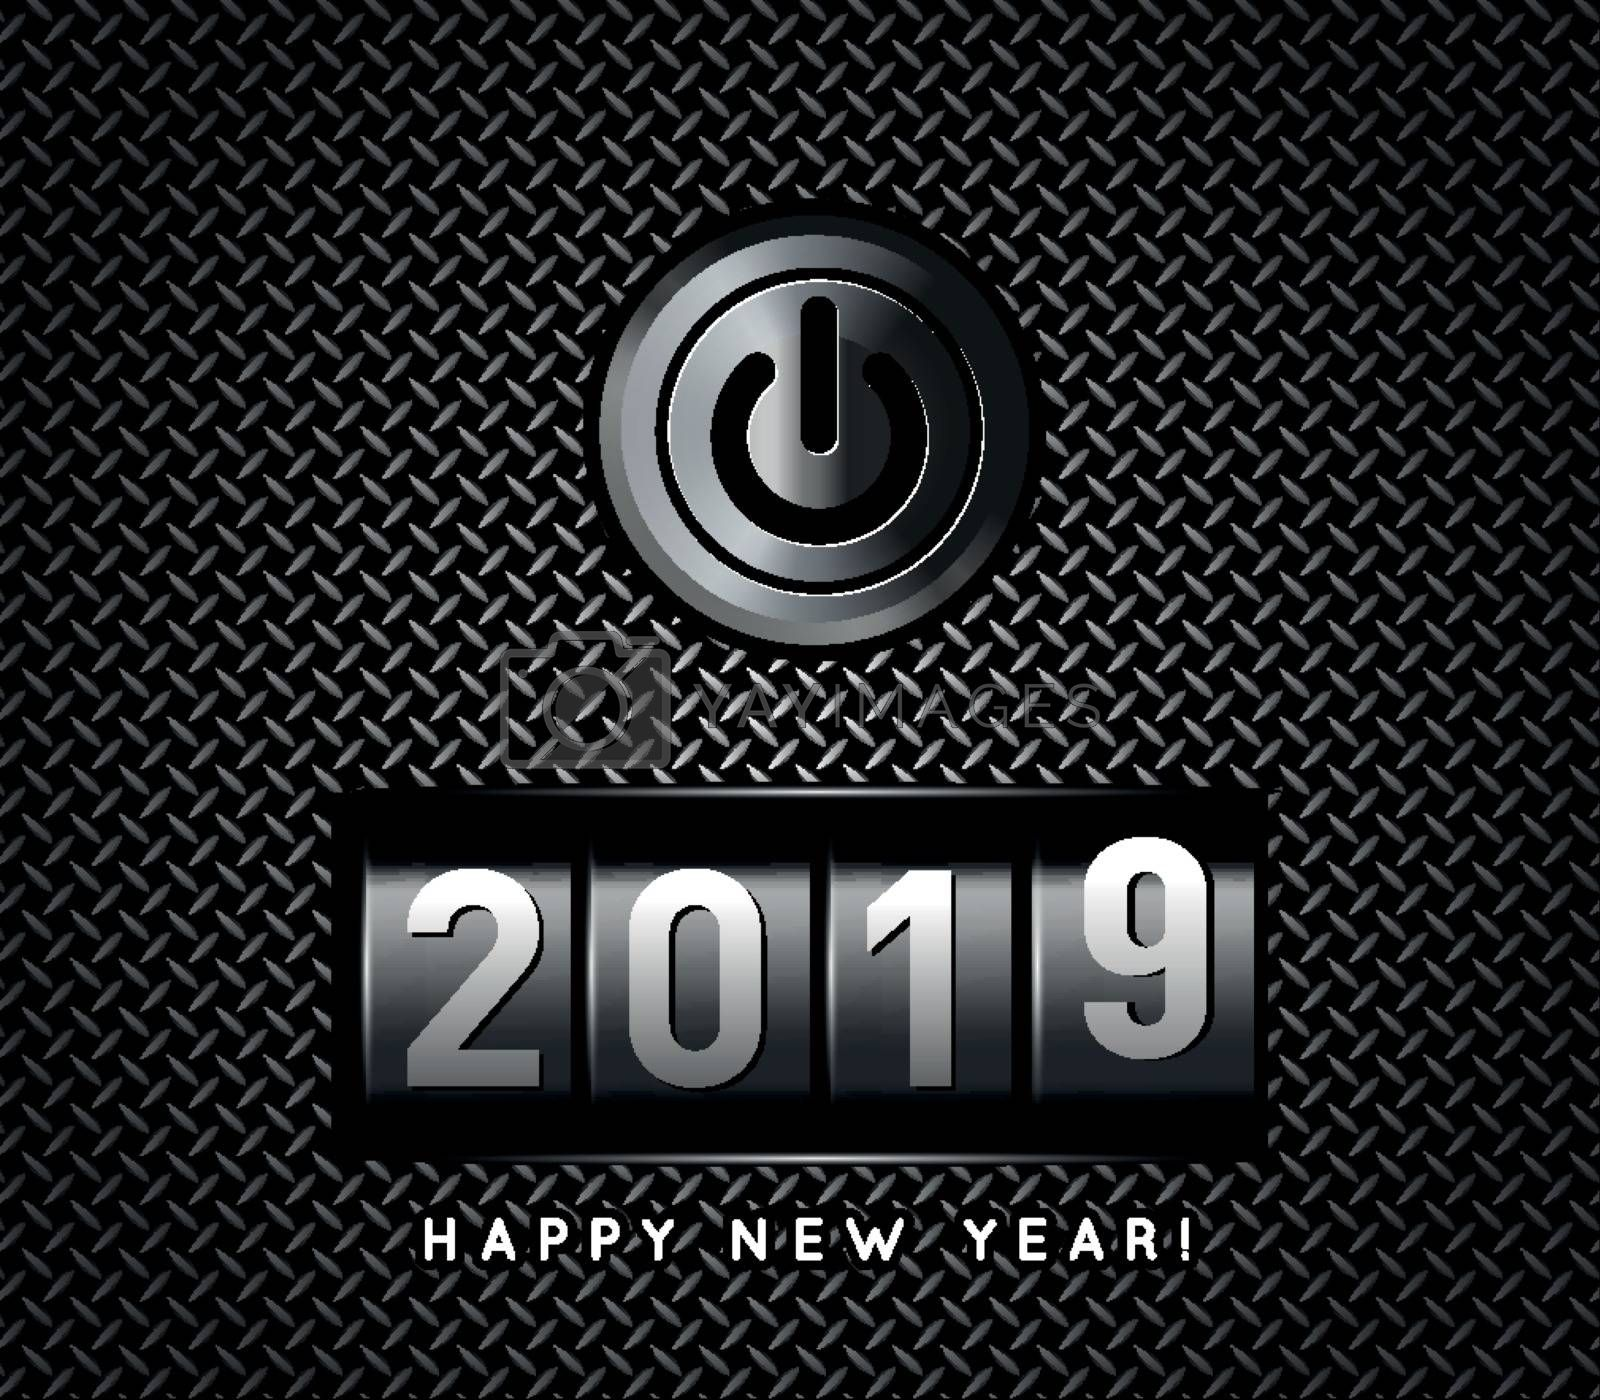 New Year counter 2019 with power button. Vector illustration